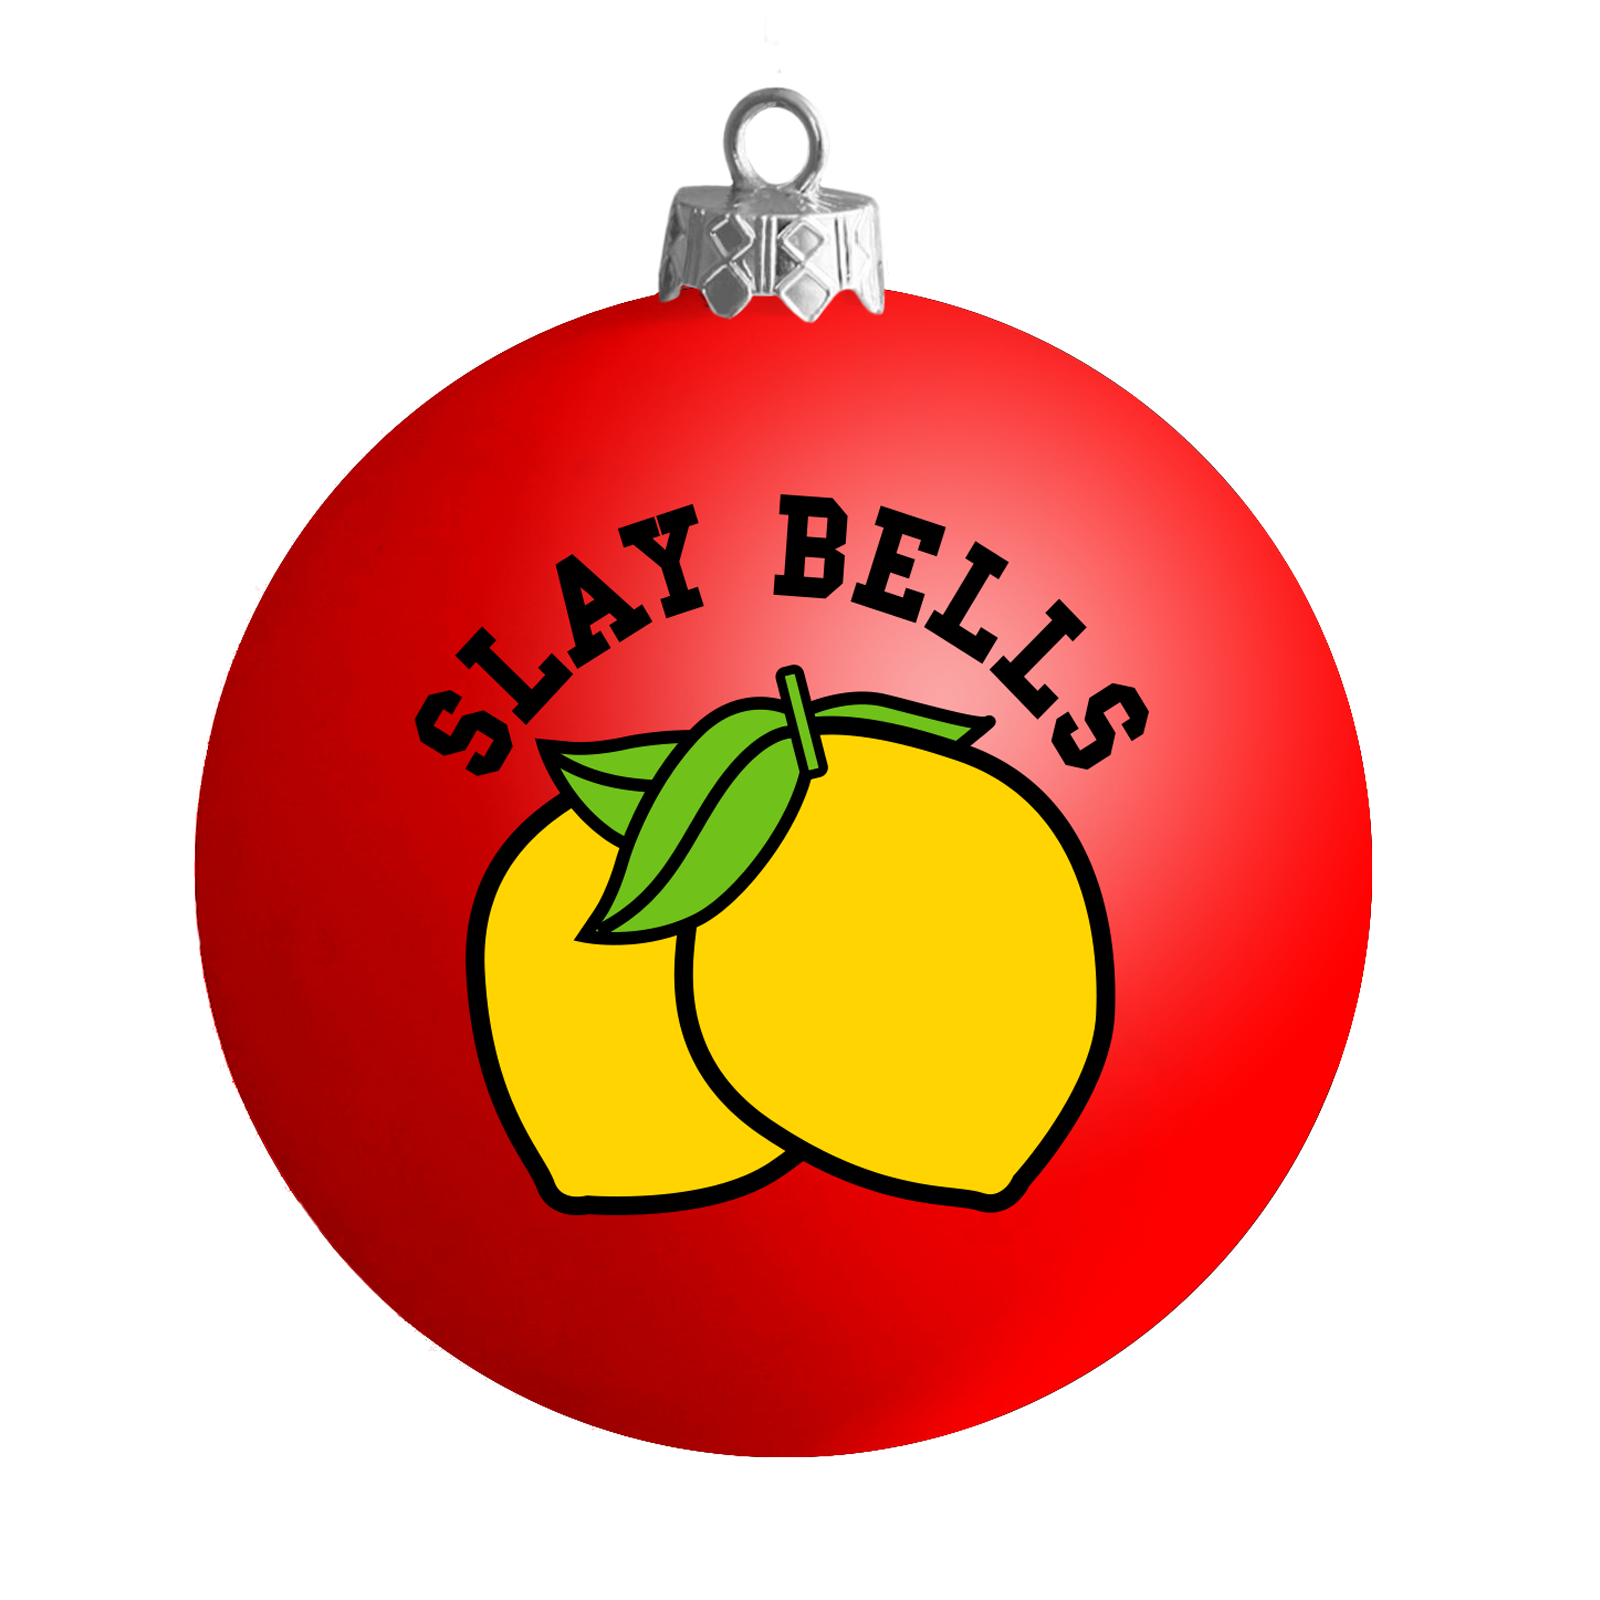 Ornament_Slaybells_Red_Ball